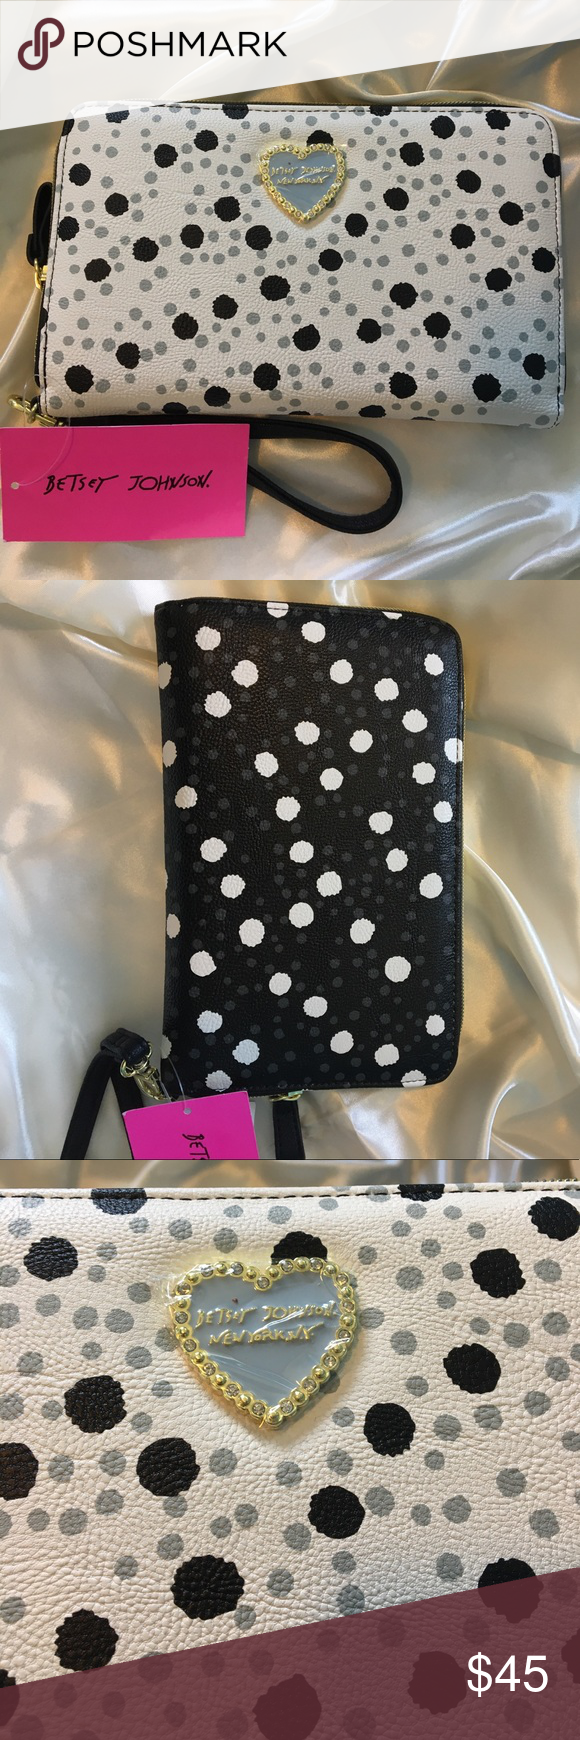 💥NWT Betsey Johnson Dots Travel Wallet! BRAND NEW with tag Betsey Johnson Dots Travel Wallet! Perfect to hold everything! Has 12 card slots and a zipper divider. Dot prints is in color black and gray and has a gold zip top closure. Will ship immediately, get her now❤️ Betsey Johnson Bags Wallets